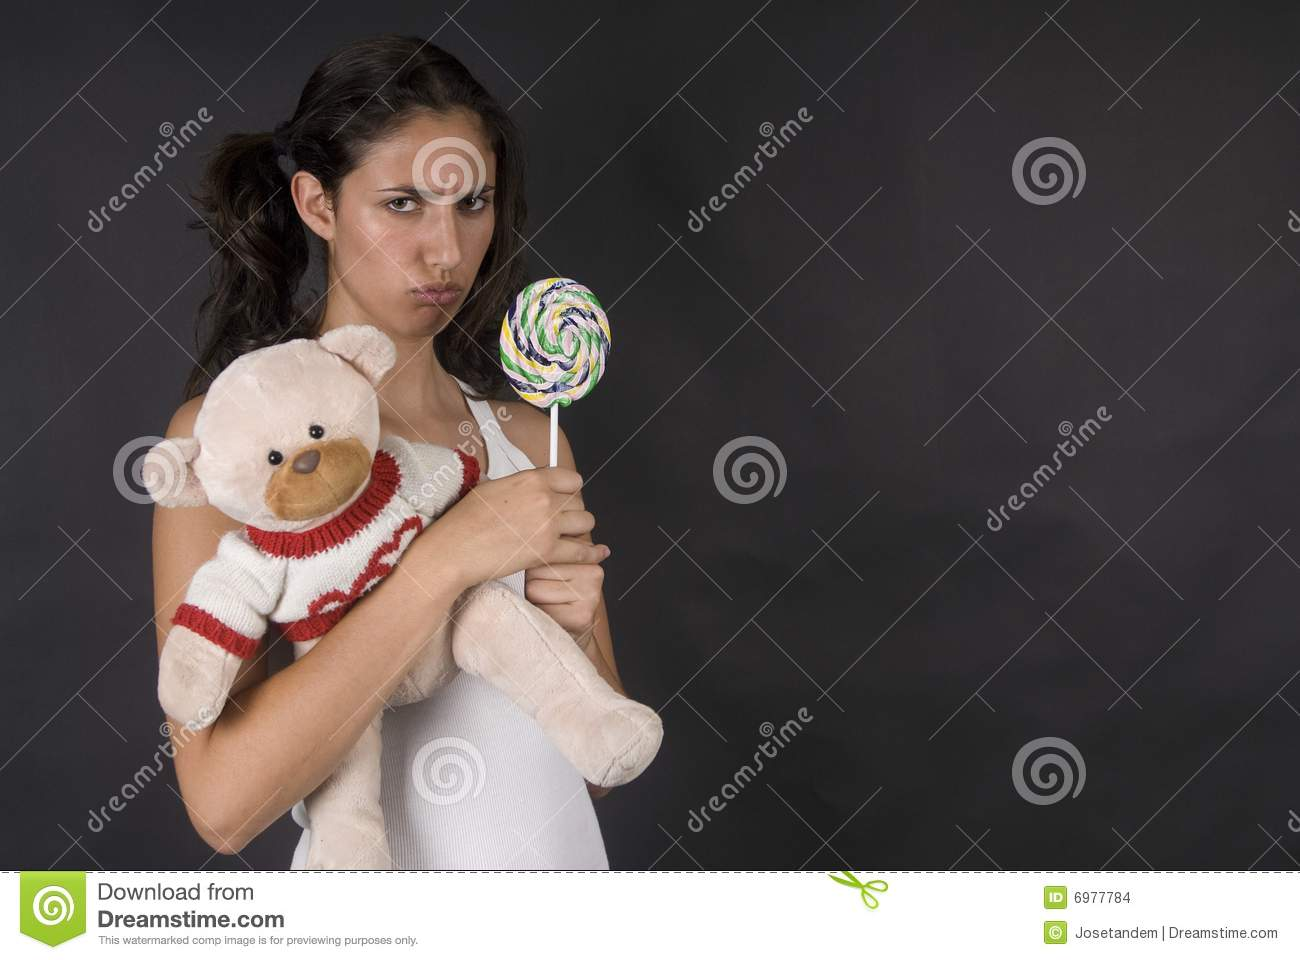 Naughty Girl Eating A Large Lolly Pop Stock Photo Image Of